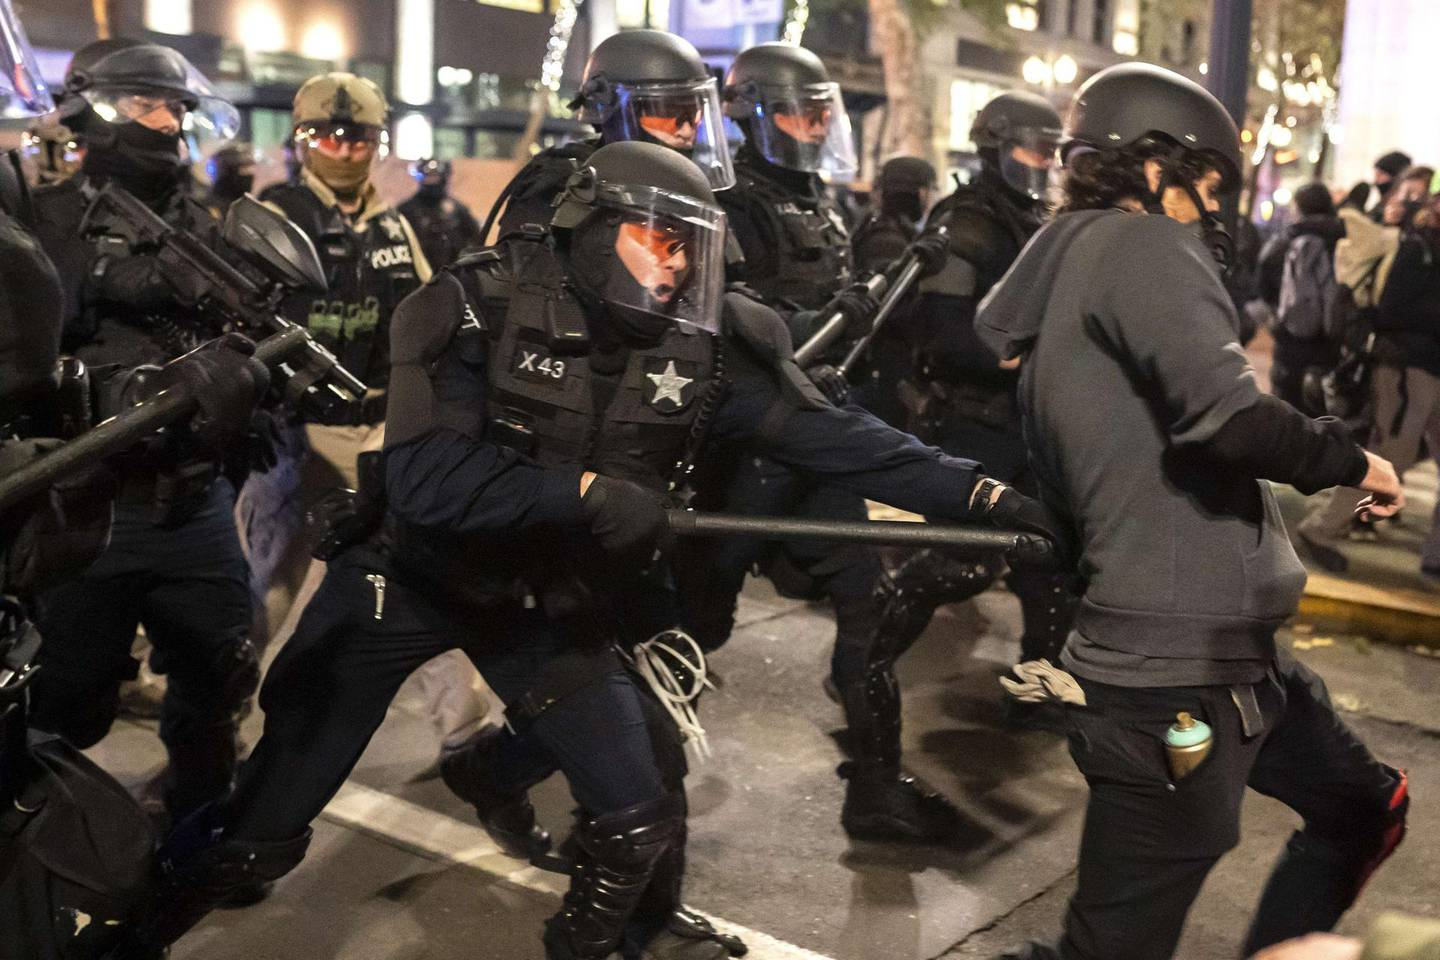 PORTLAND, OR - NOVEMBER 04: An Oregon State Trooper hits a protester with his baton while dispersing a crowd of black bloc protesters on November 4, 2020 in Portland, Oregon. Multiple protests, some peaceful and others violent, broke out in Portland as the presidential election remained undecided.   Nathan Howard/Getty Images/AFP == FOR NEWSPAPERS, INTERNET, TELCOS & TELEVISION USE ONLY ==